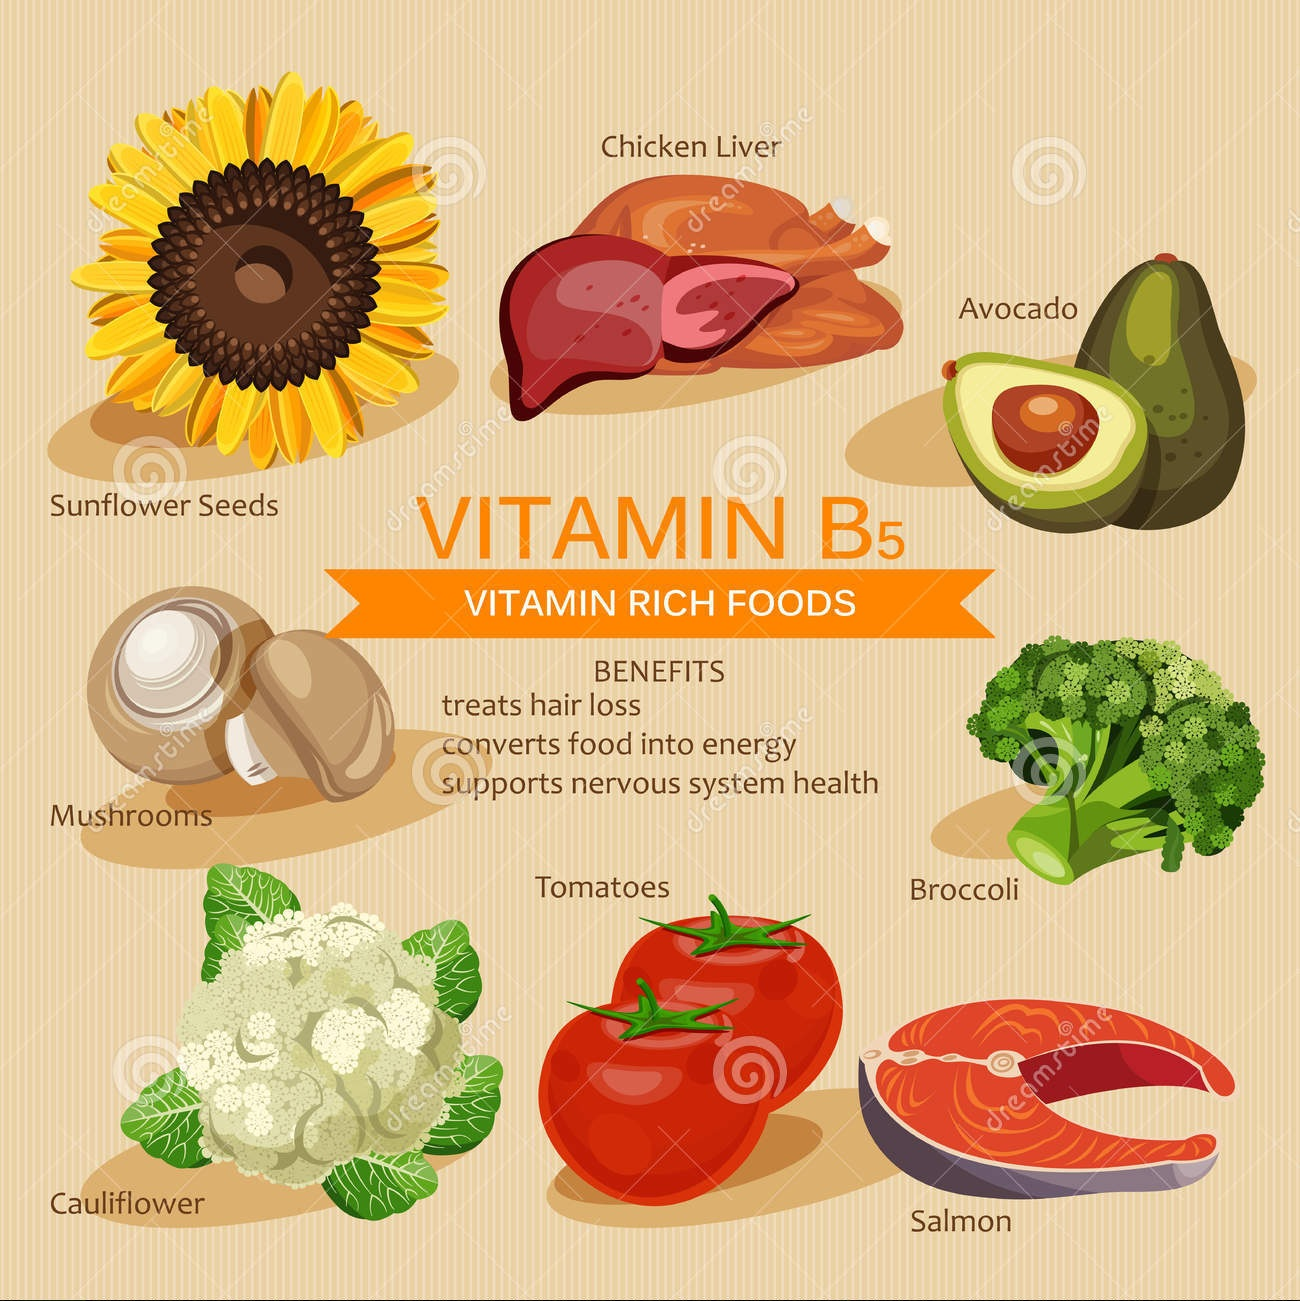 vitamins-minerals-foods-illustration-vector-set-vitamin-rich-foods-vitamin-b-broccoli-chicken-liver-avocado-sunflowe-65188682.jpg